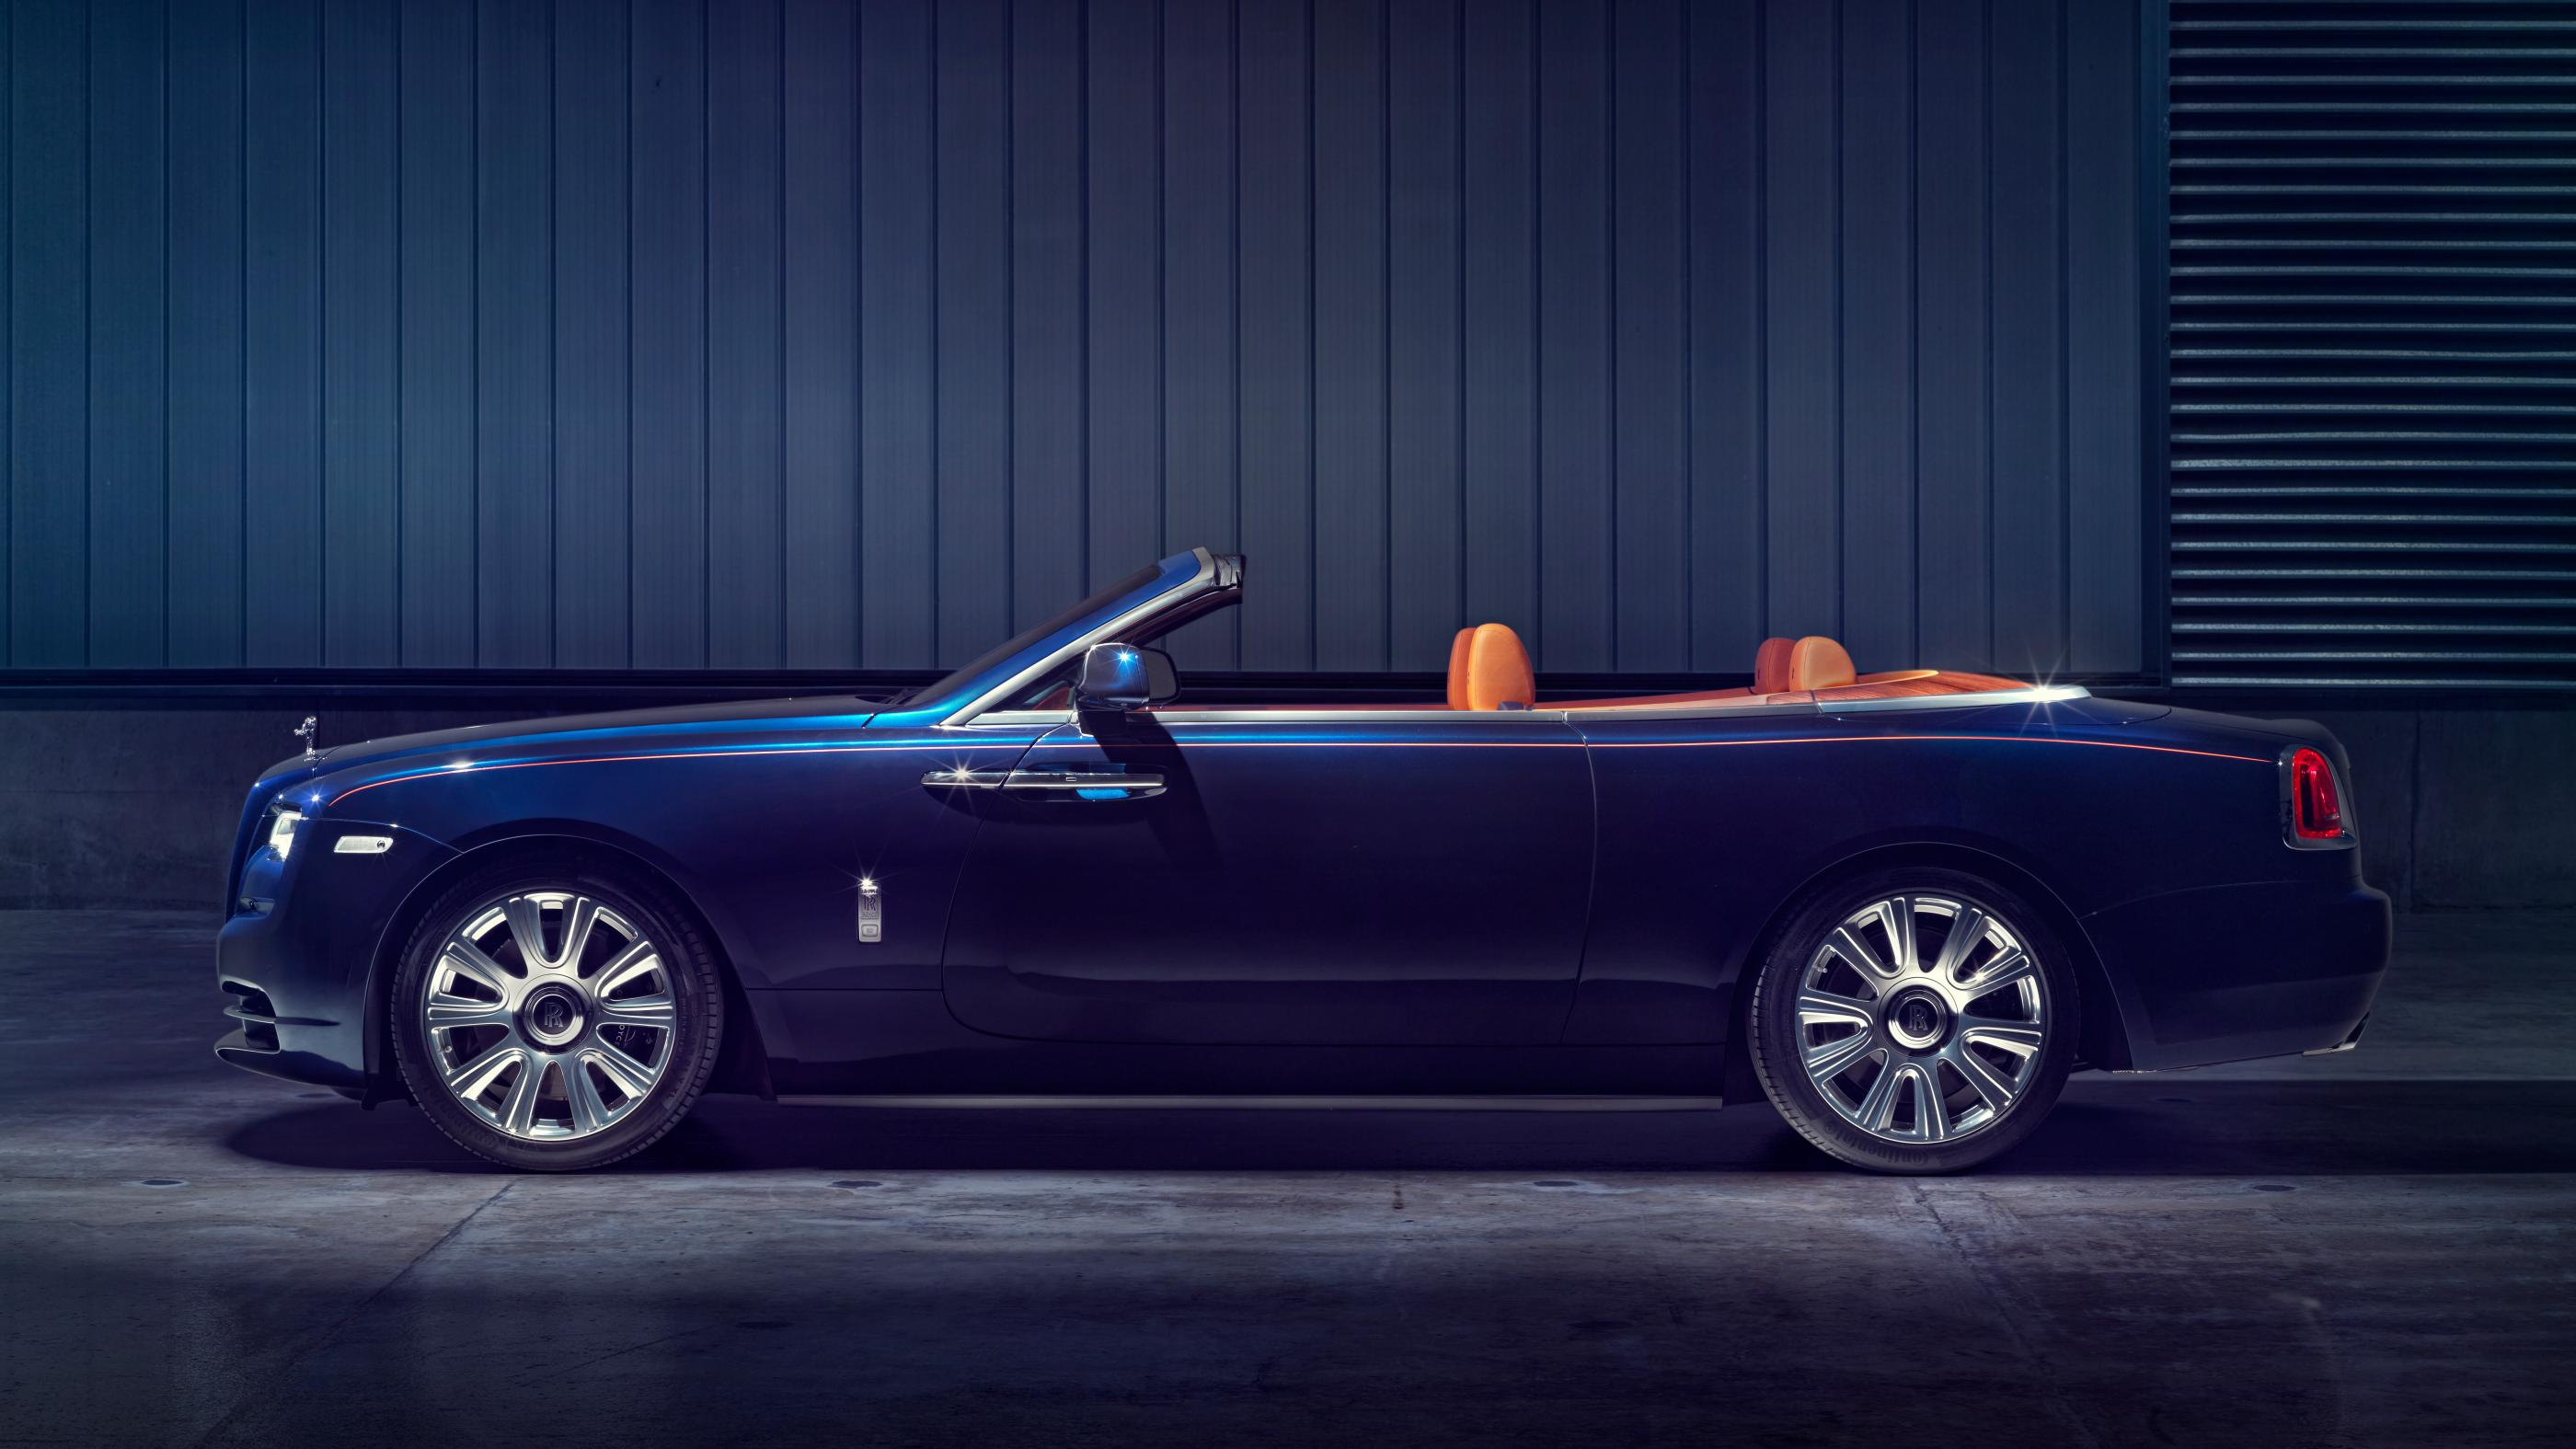 2016 rolls royce dawn 3 wallpaper hd car wallpapers 2016 rolls royce dawn 3 voltagebd Gallery